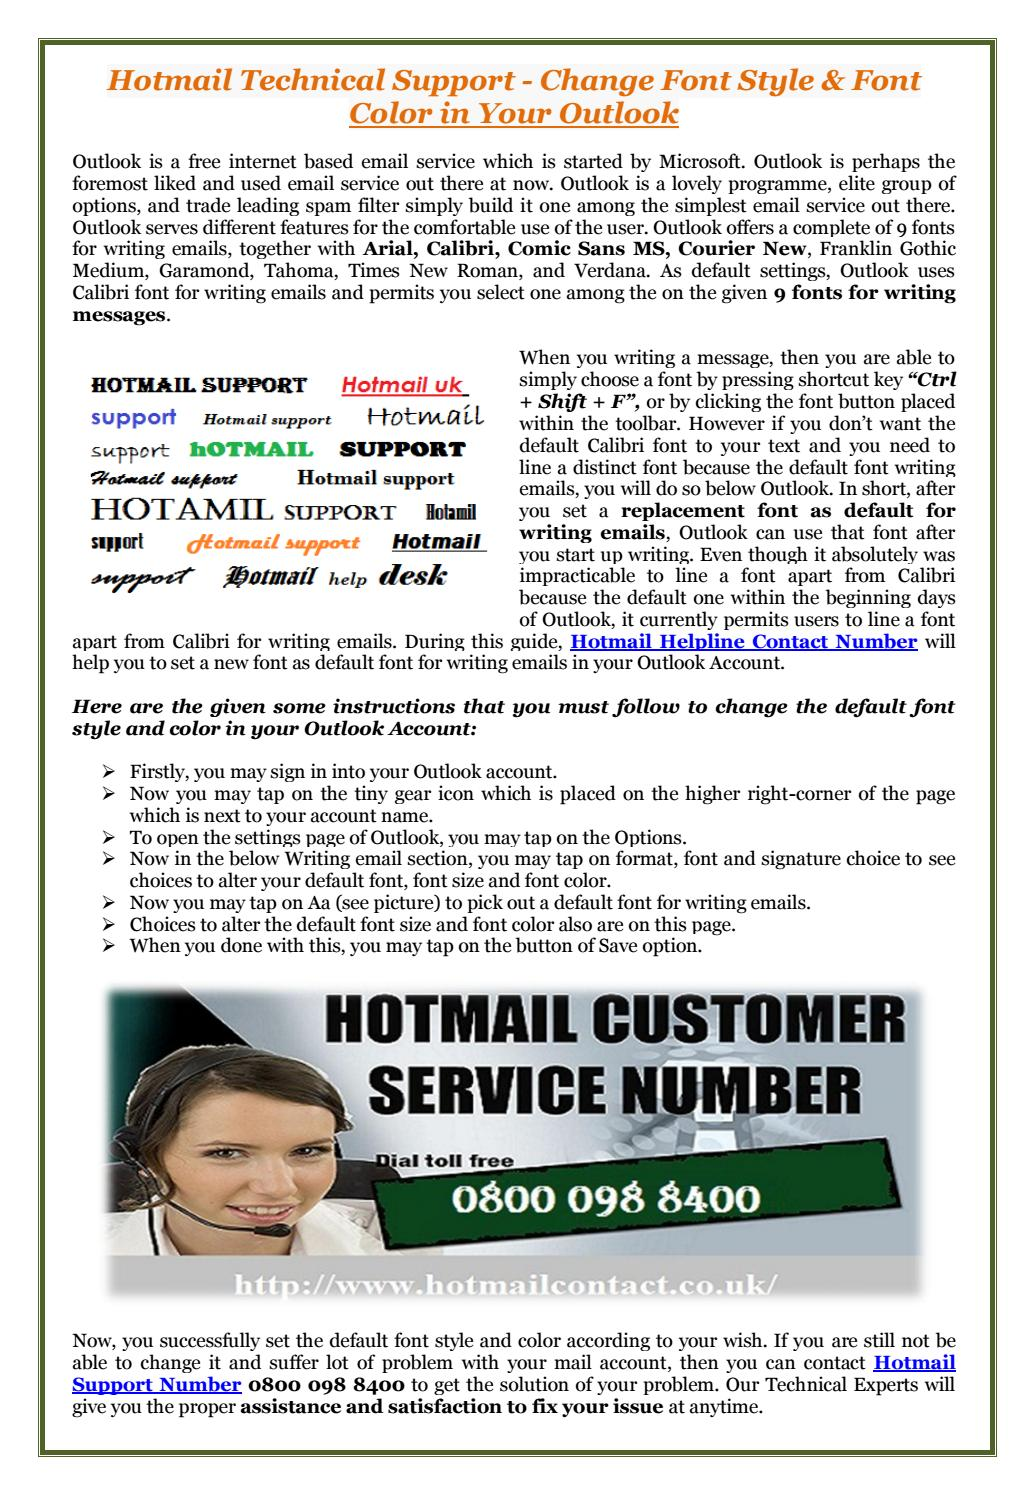 Hotmail Tech Support Change Hotmail Font Style And Color By Hotmail